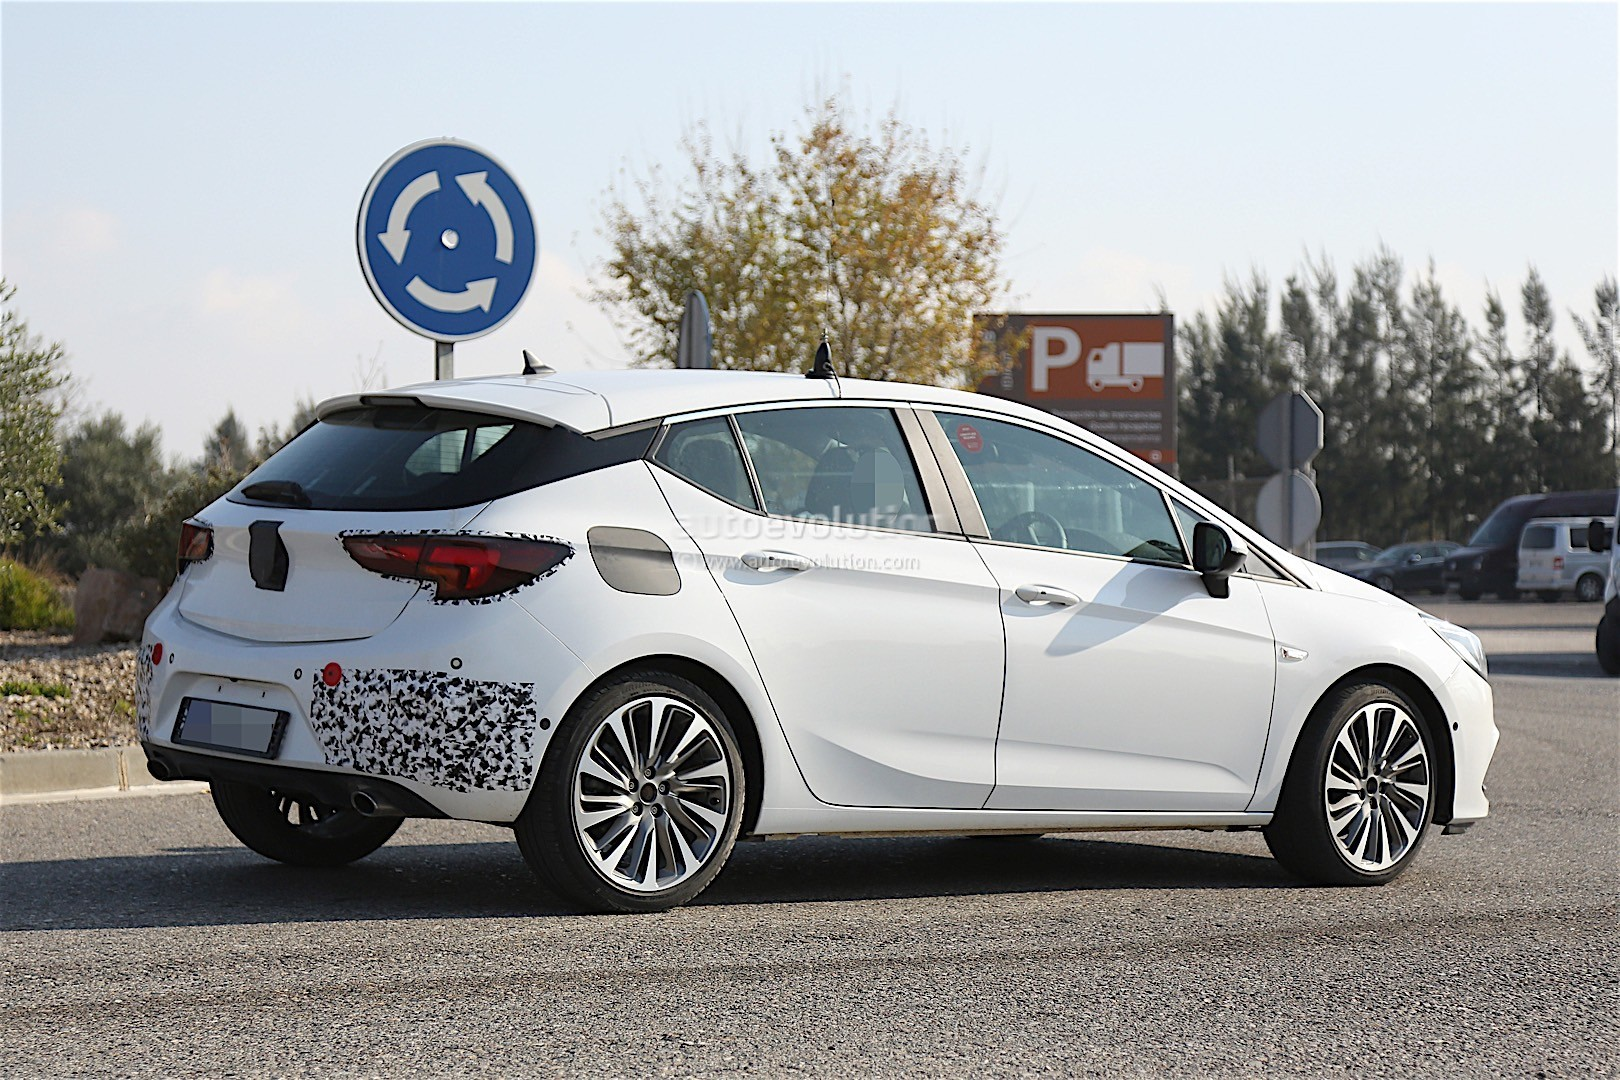 2017 Dodge Viper Gtc >> 2016 Opel Astra GSi Looks Ready to Take On the VW GTI in These Latest Spyshots - autoevolution